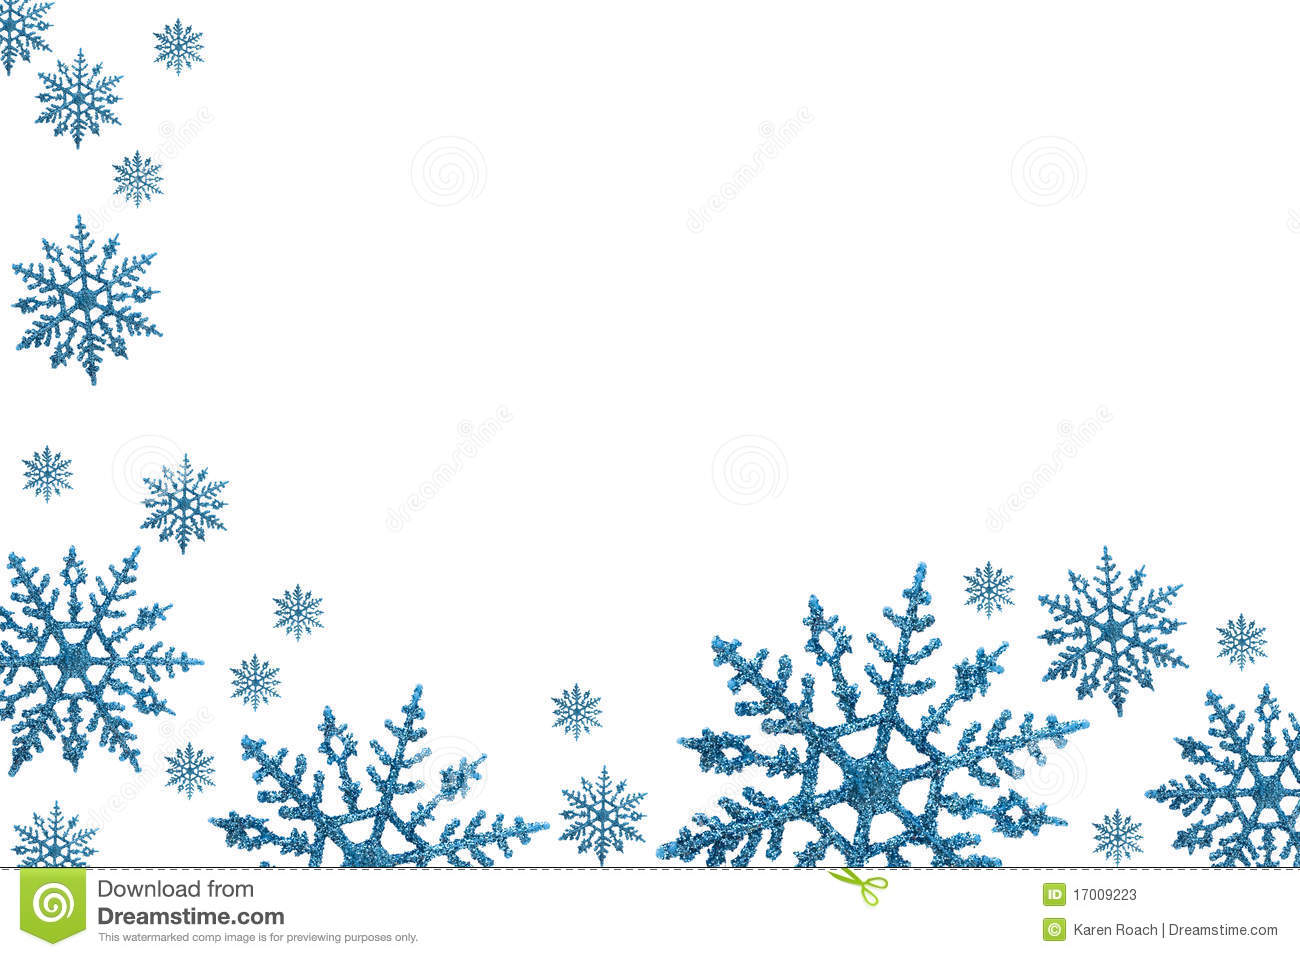 Winter Border Clipart Winter Border Clip-Winter Border Clipart Winter Border Clipart Winter Border Clipart-16